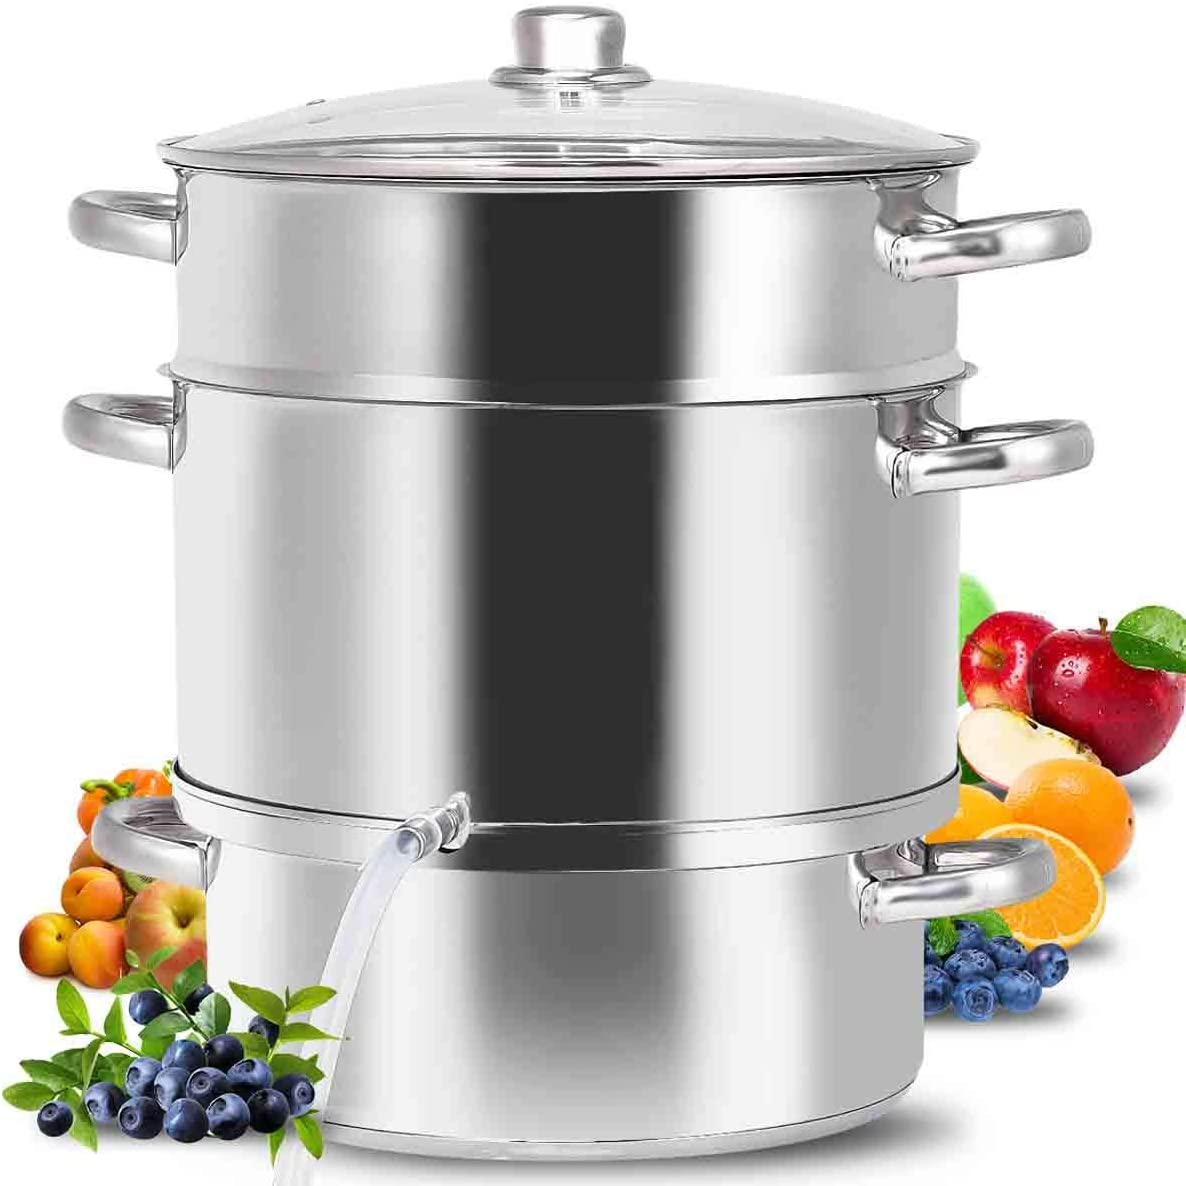 Toolsempire Fruit Steam Juicer Stainless Steel Vegetables Juicer Steamers Multipots Kitchen Cookware for Making Juice, Jelly, Pasta